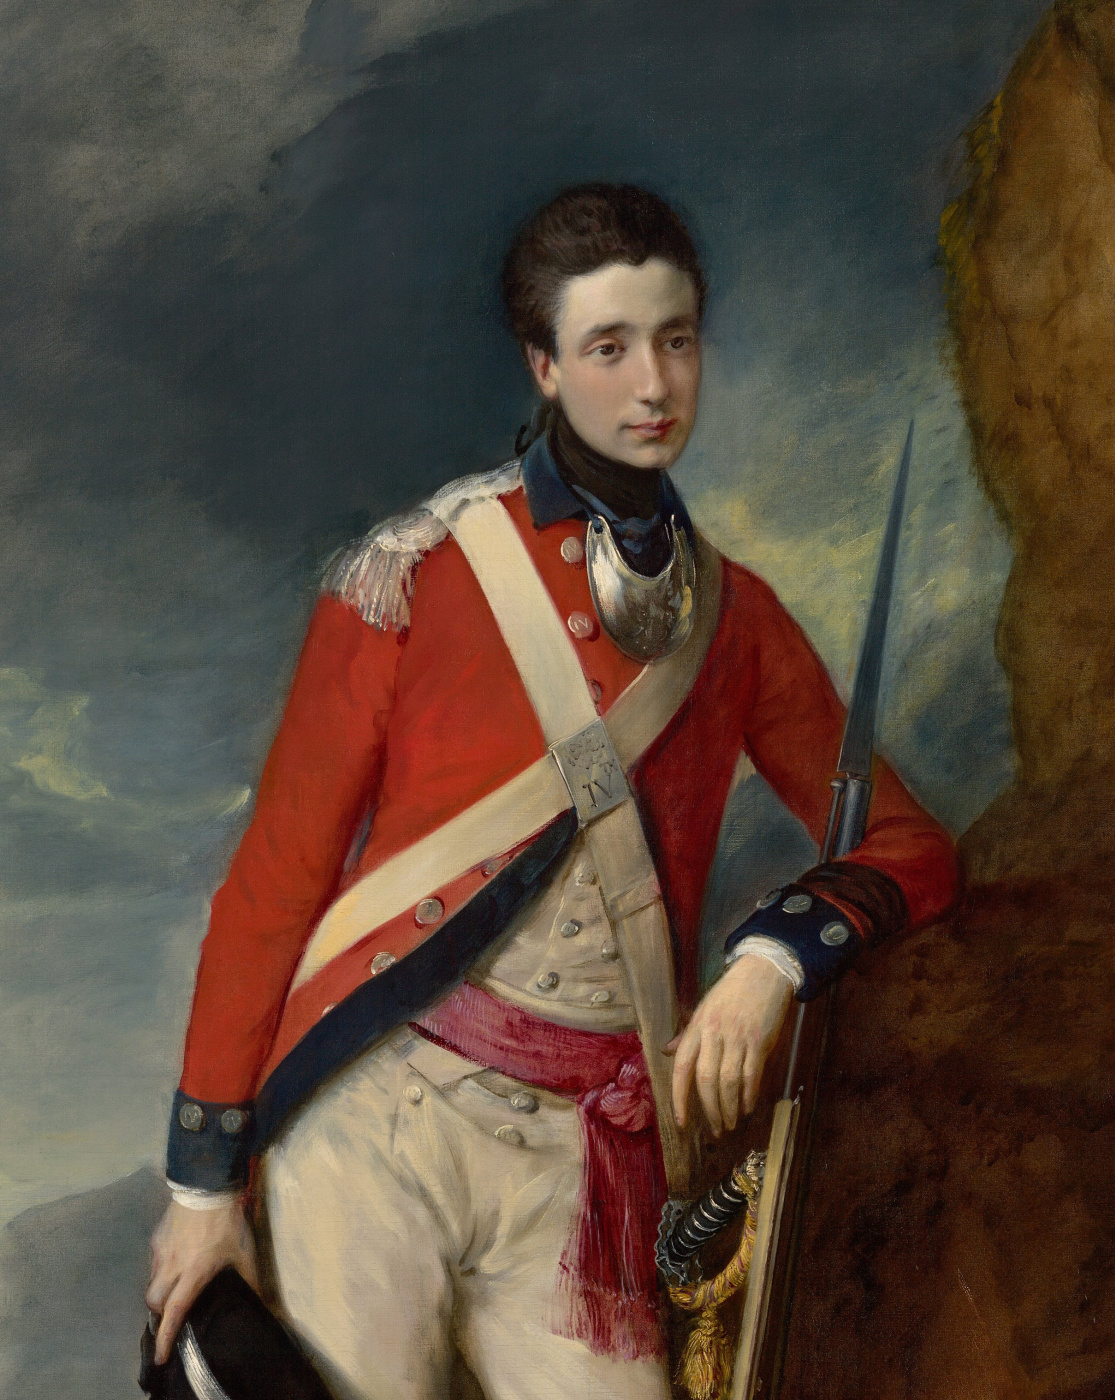 Thomas Gainsborough. Portrait of an officer of the 4th Infantry regiment with the dog. Fragment